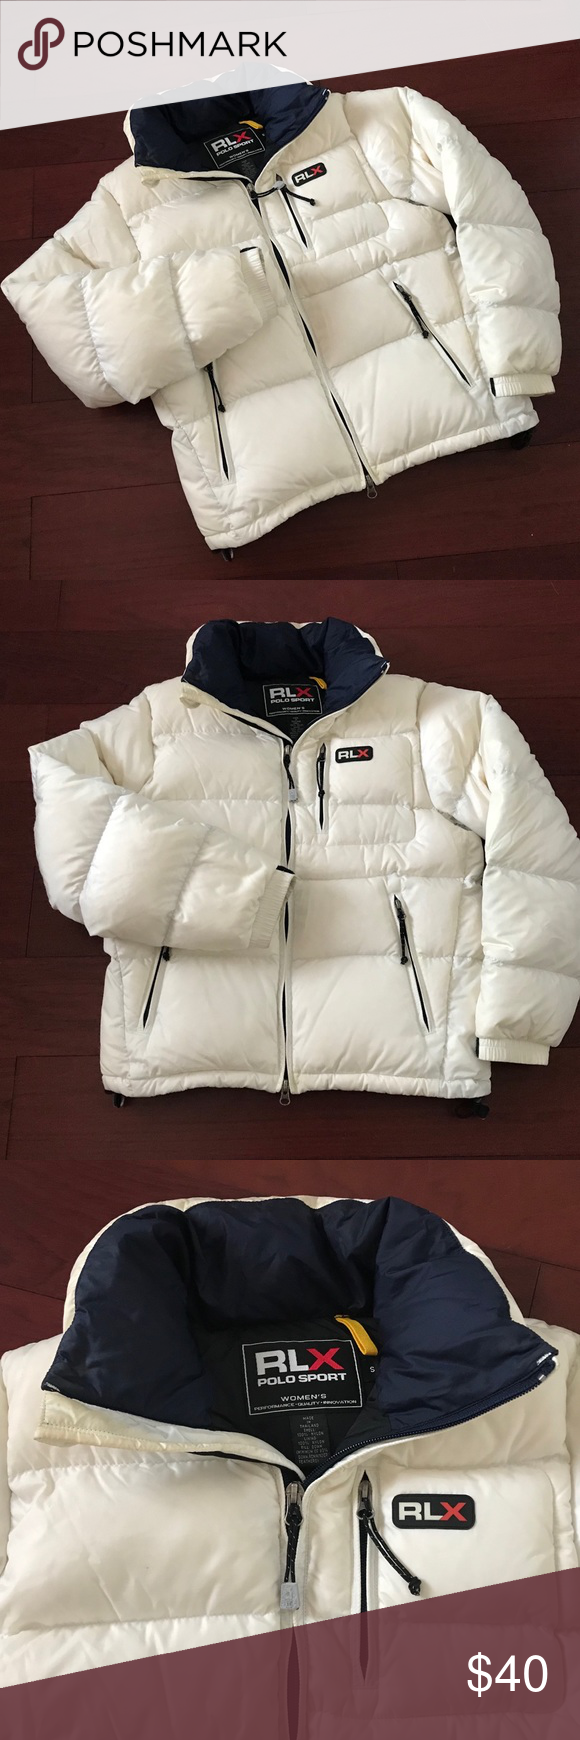 Polo Sport Puffer Size S Rlx Polo Sport Women S Puffer This White Puffer Is Great For The Ski Slopes Or Just Run Sports Women Puffer Ralph Lauren Jackets [ 1740 x 580 Pixel ]